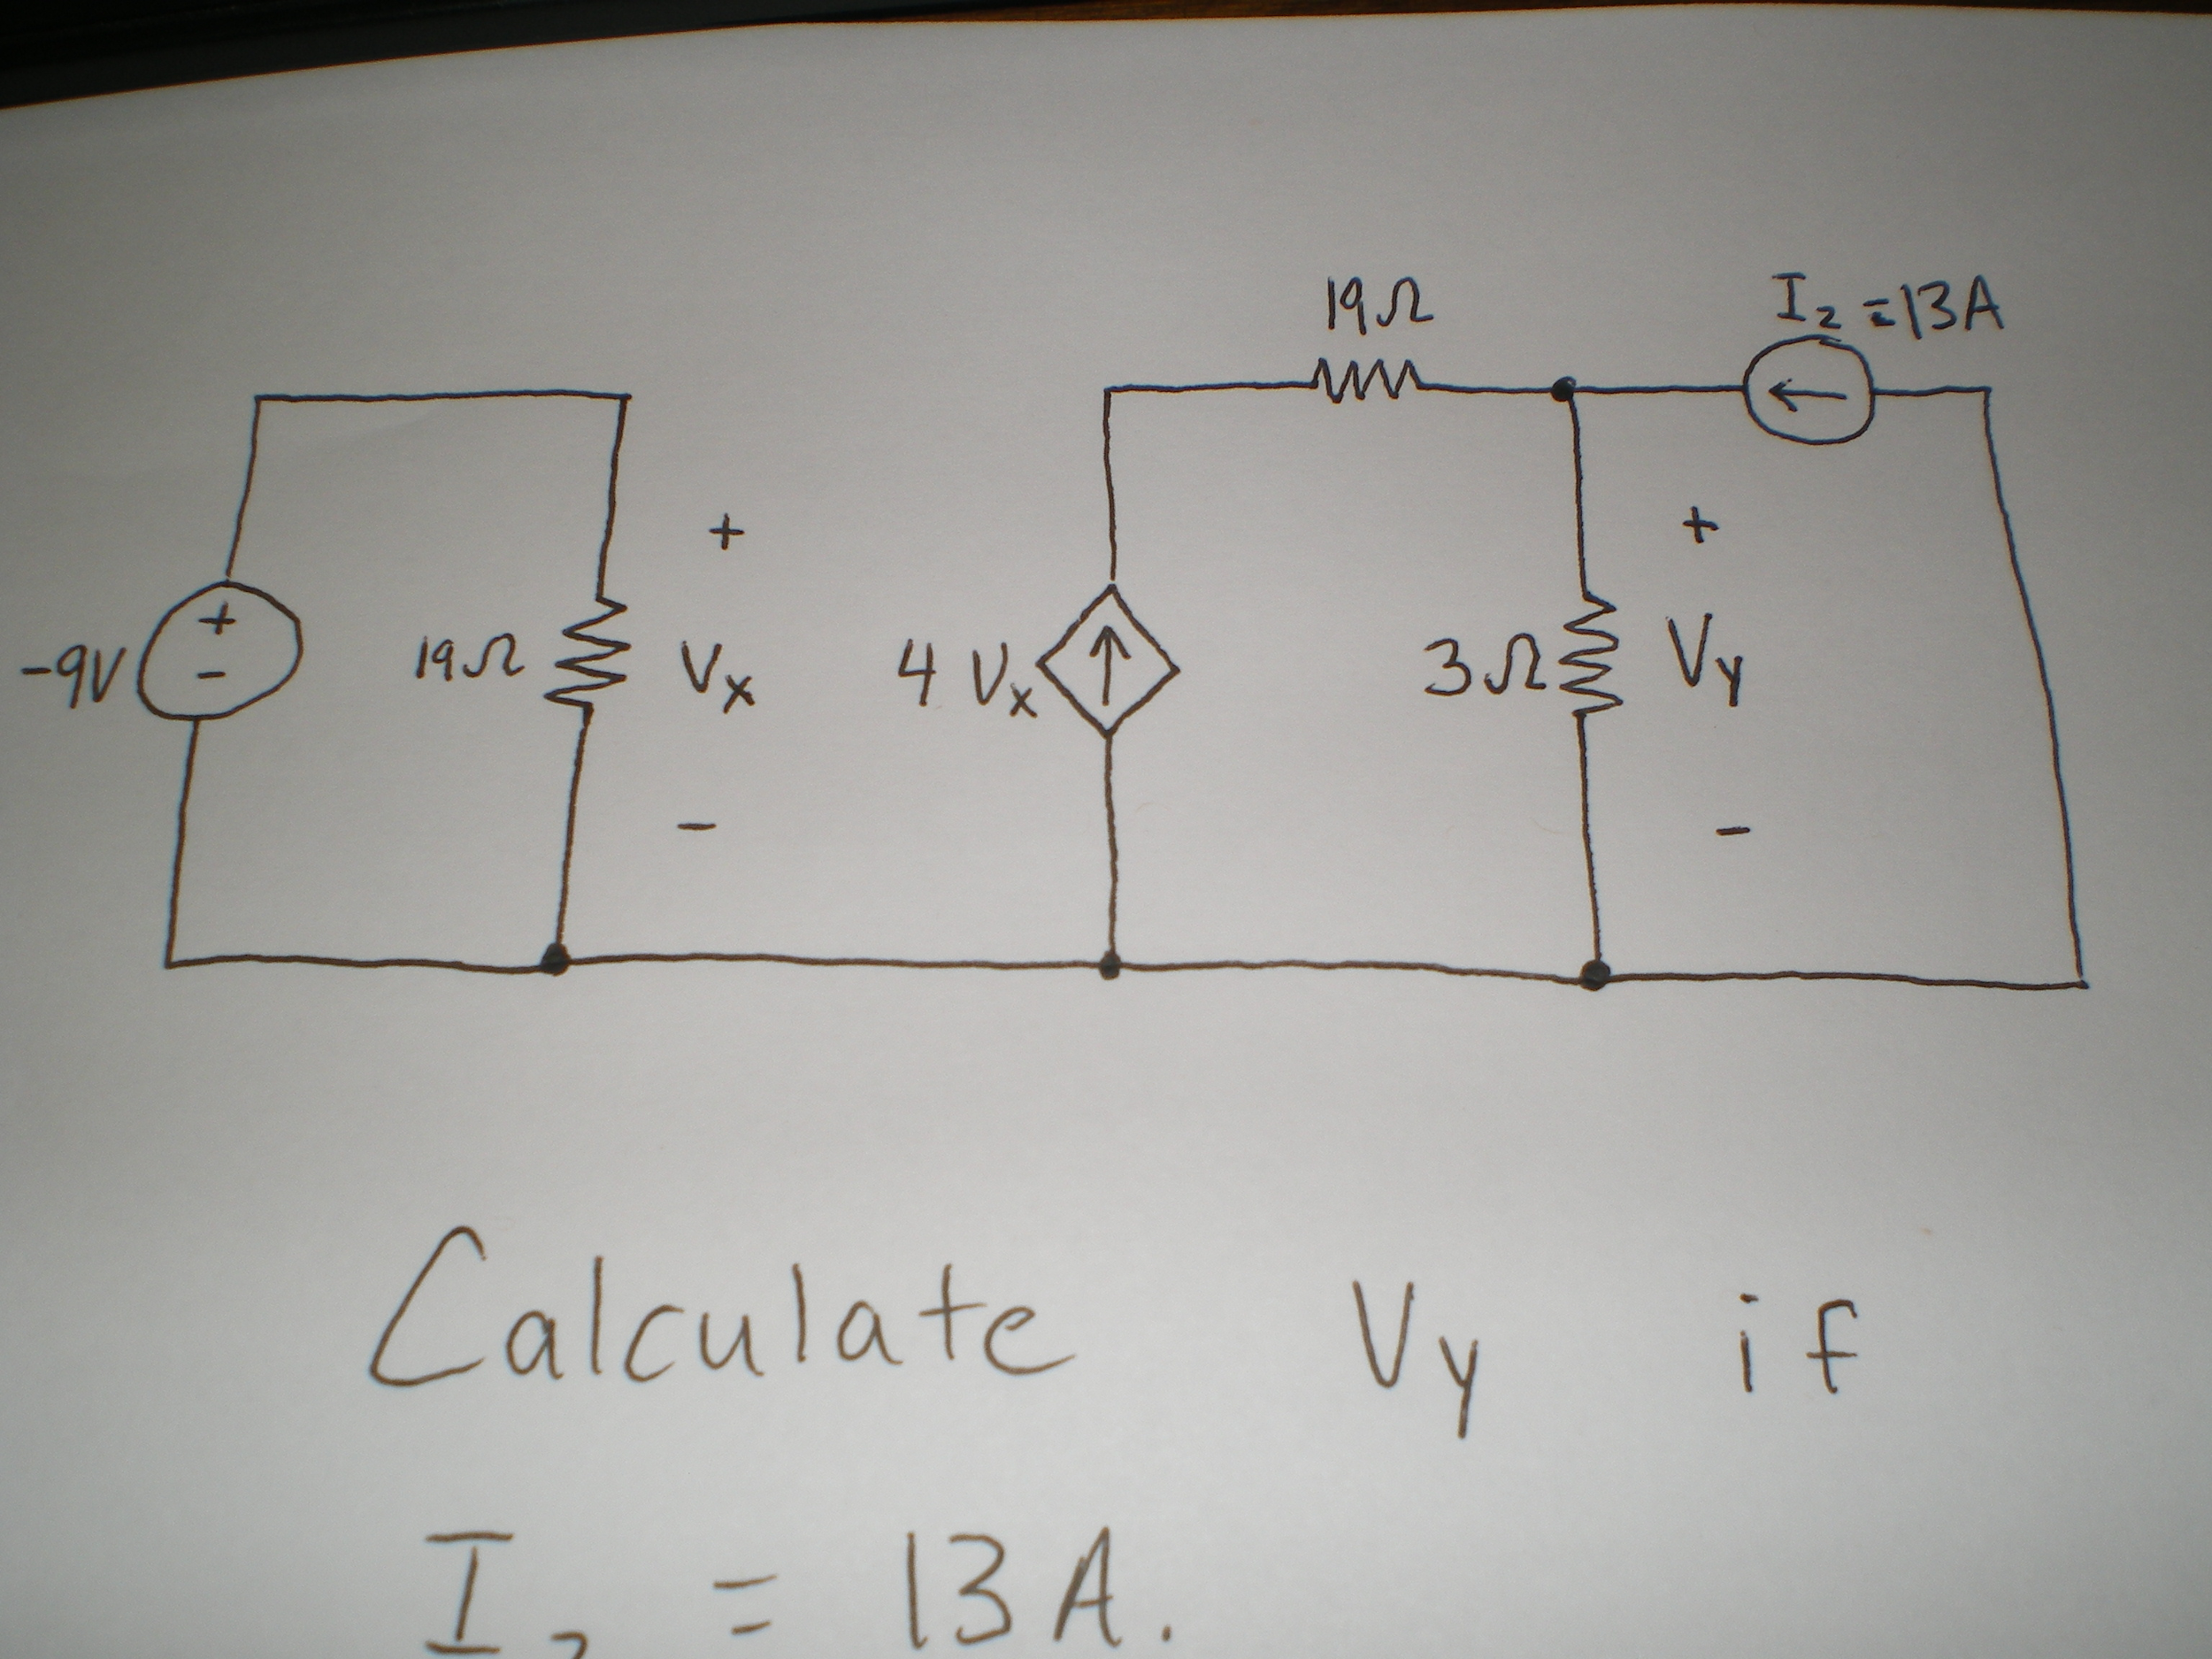 Calculate Vy if Iz = 13A